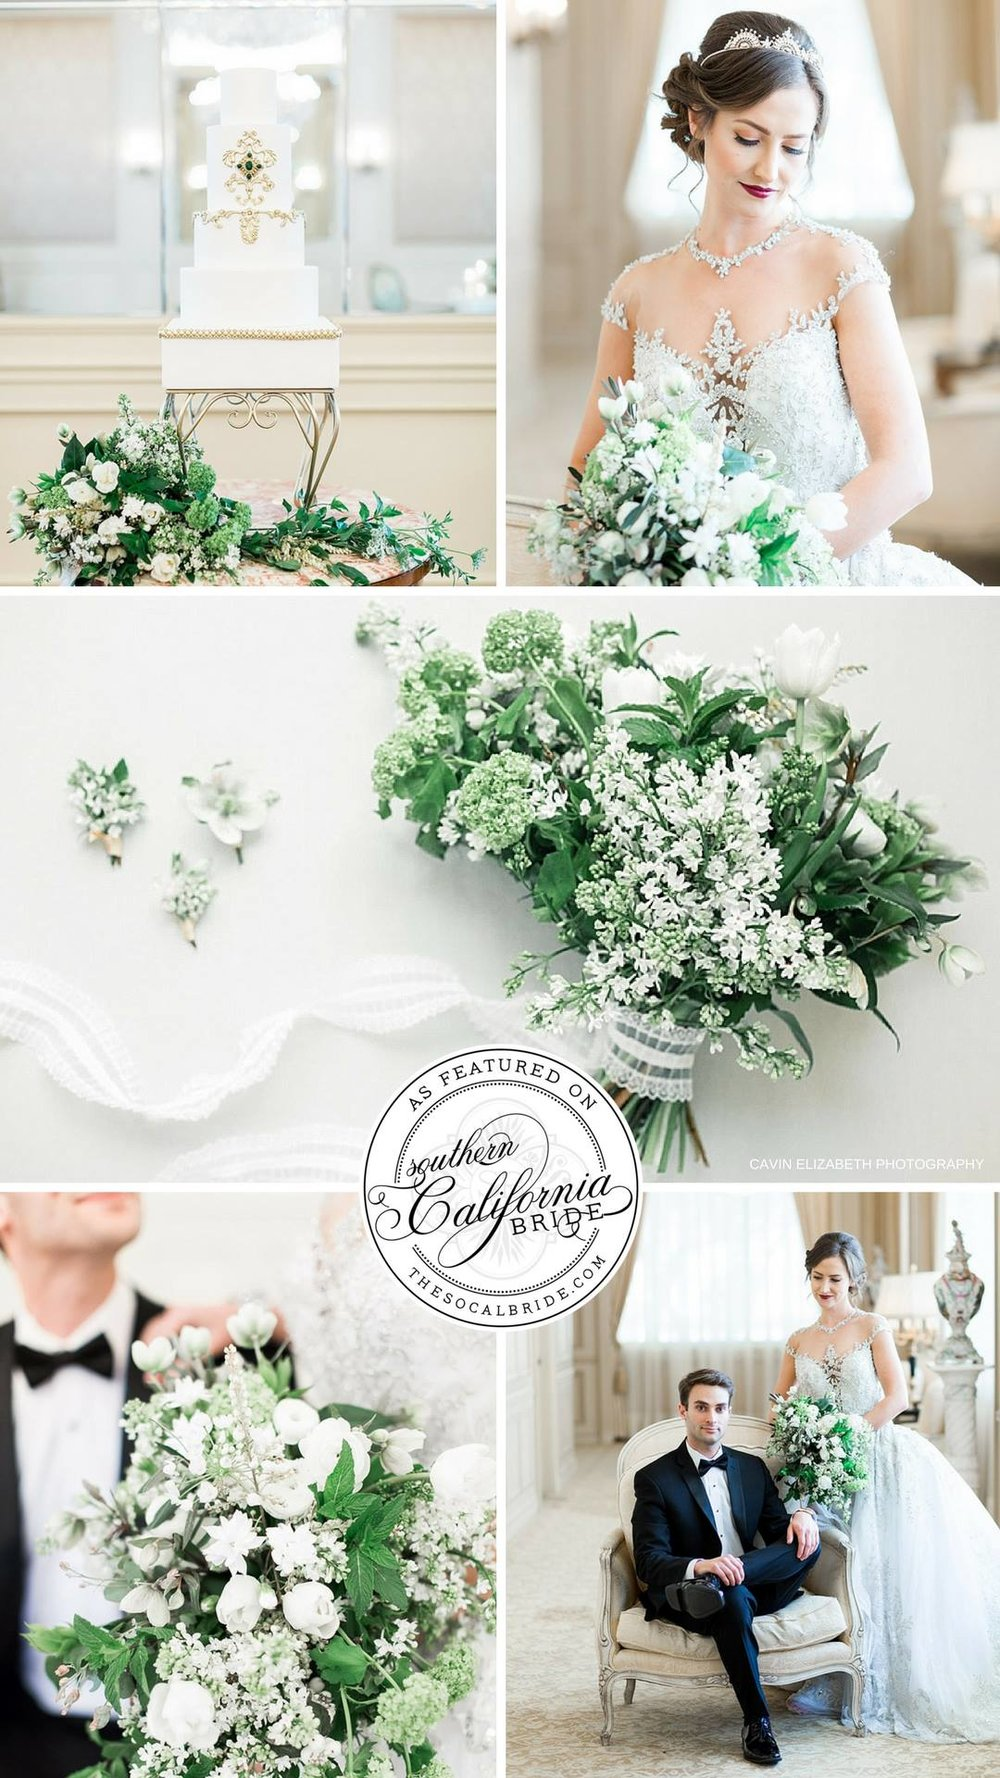 blooms-breesa-cavin-elizabeth-photography-crown-wedding-inspiration.jpg